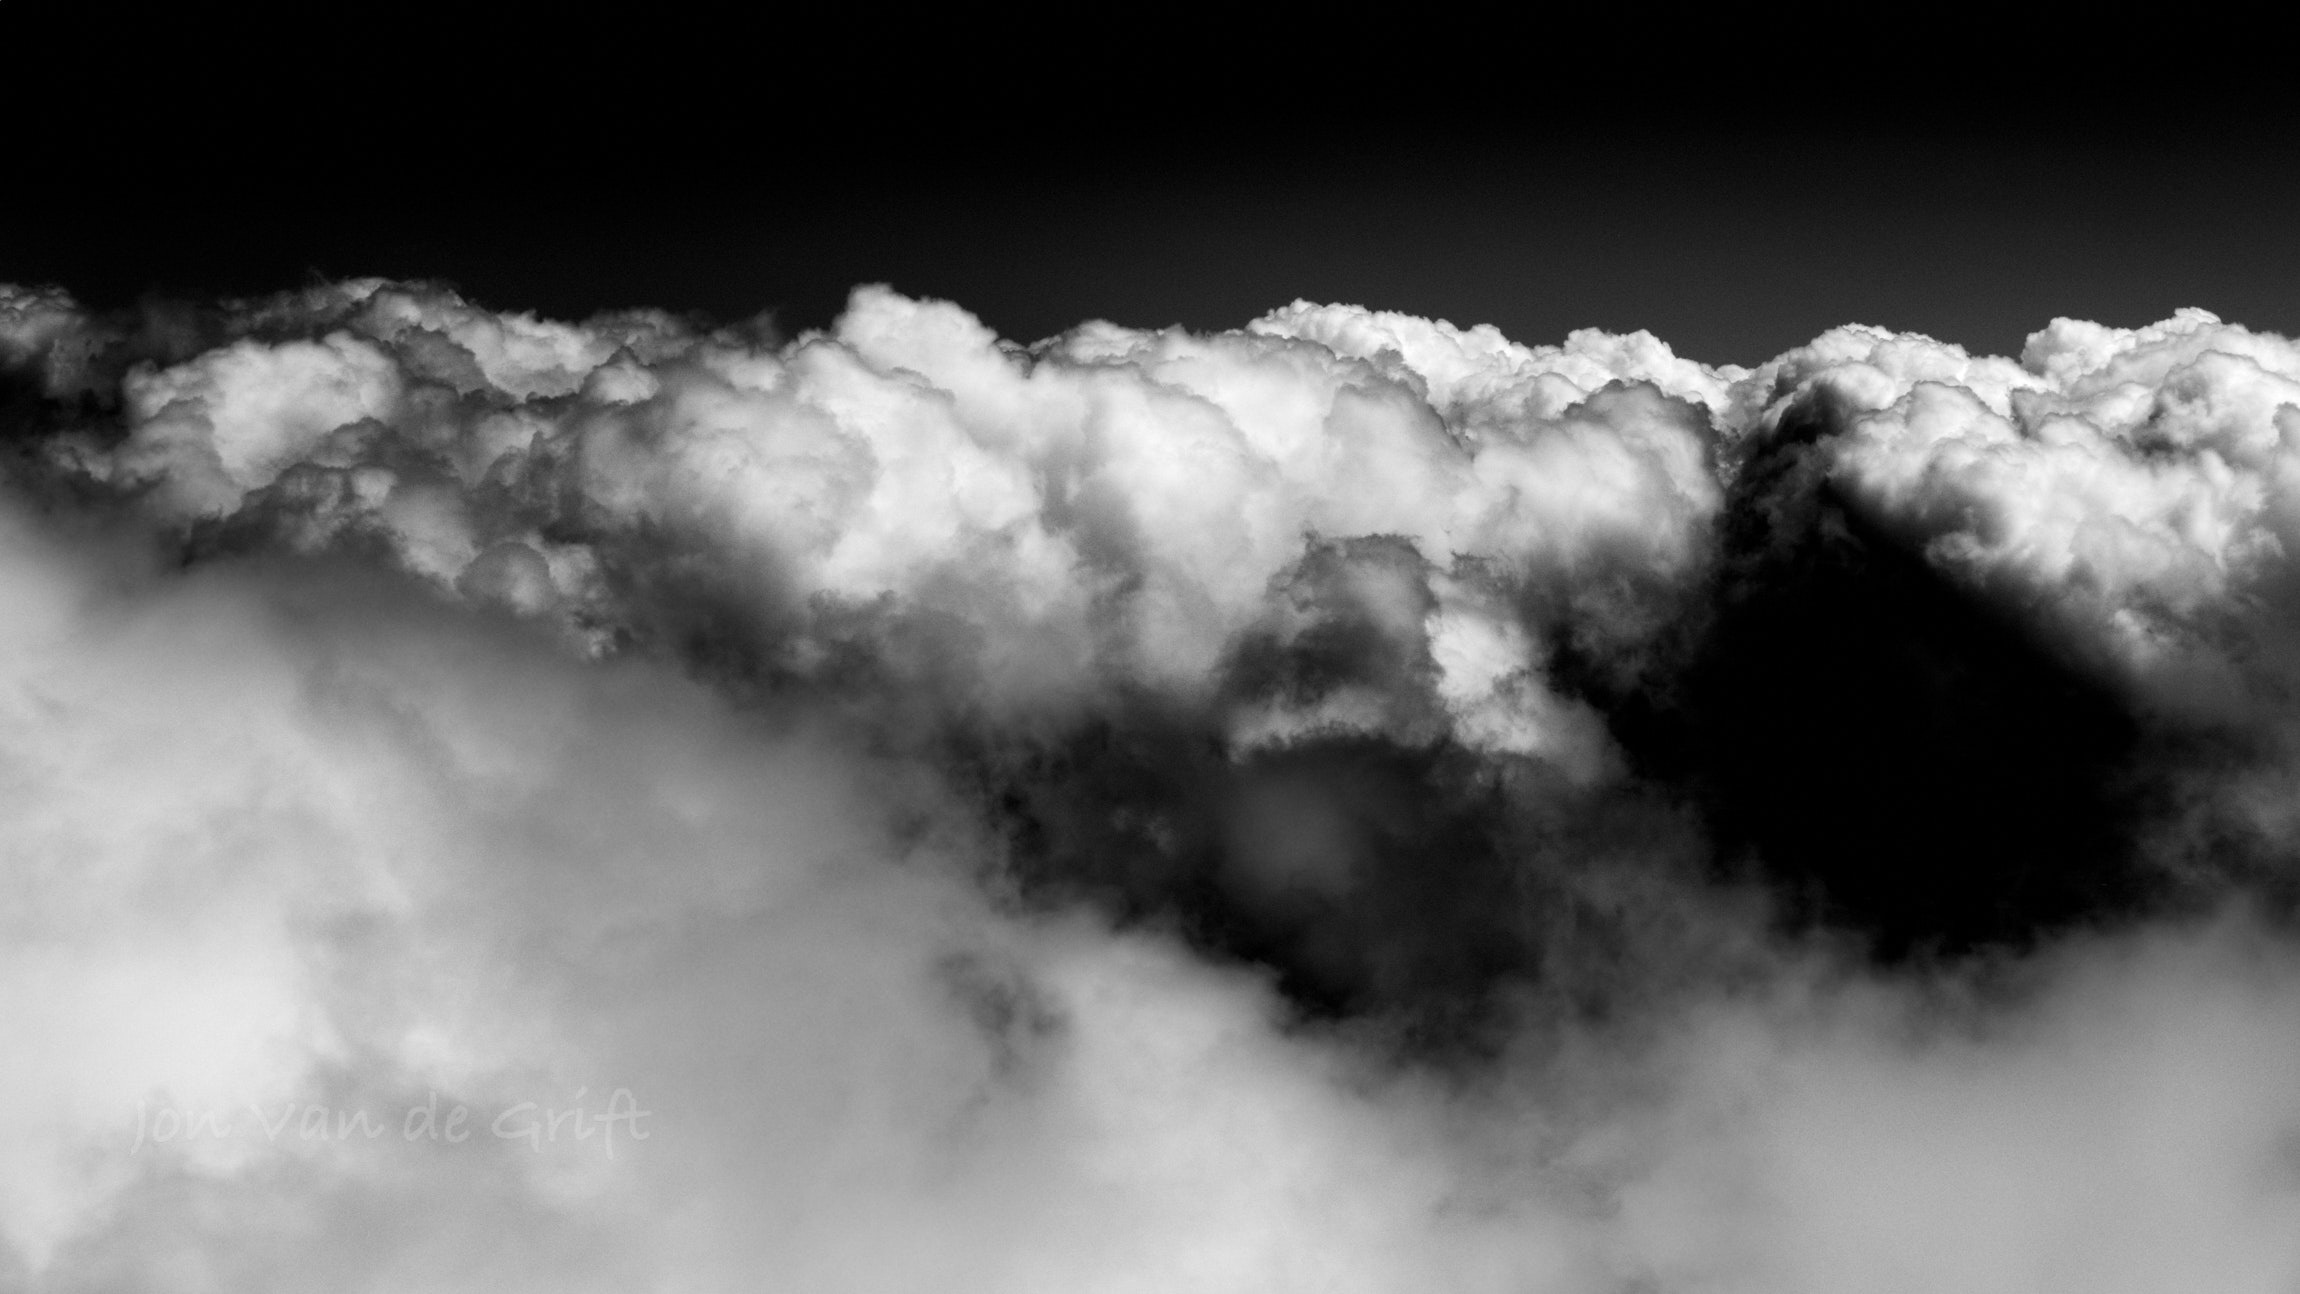 Black and white aerial photograph of a developing storm.